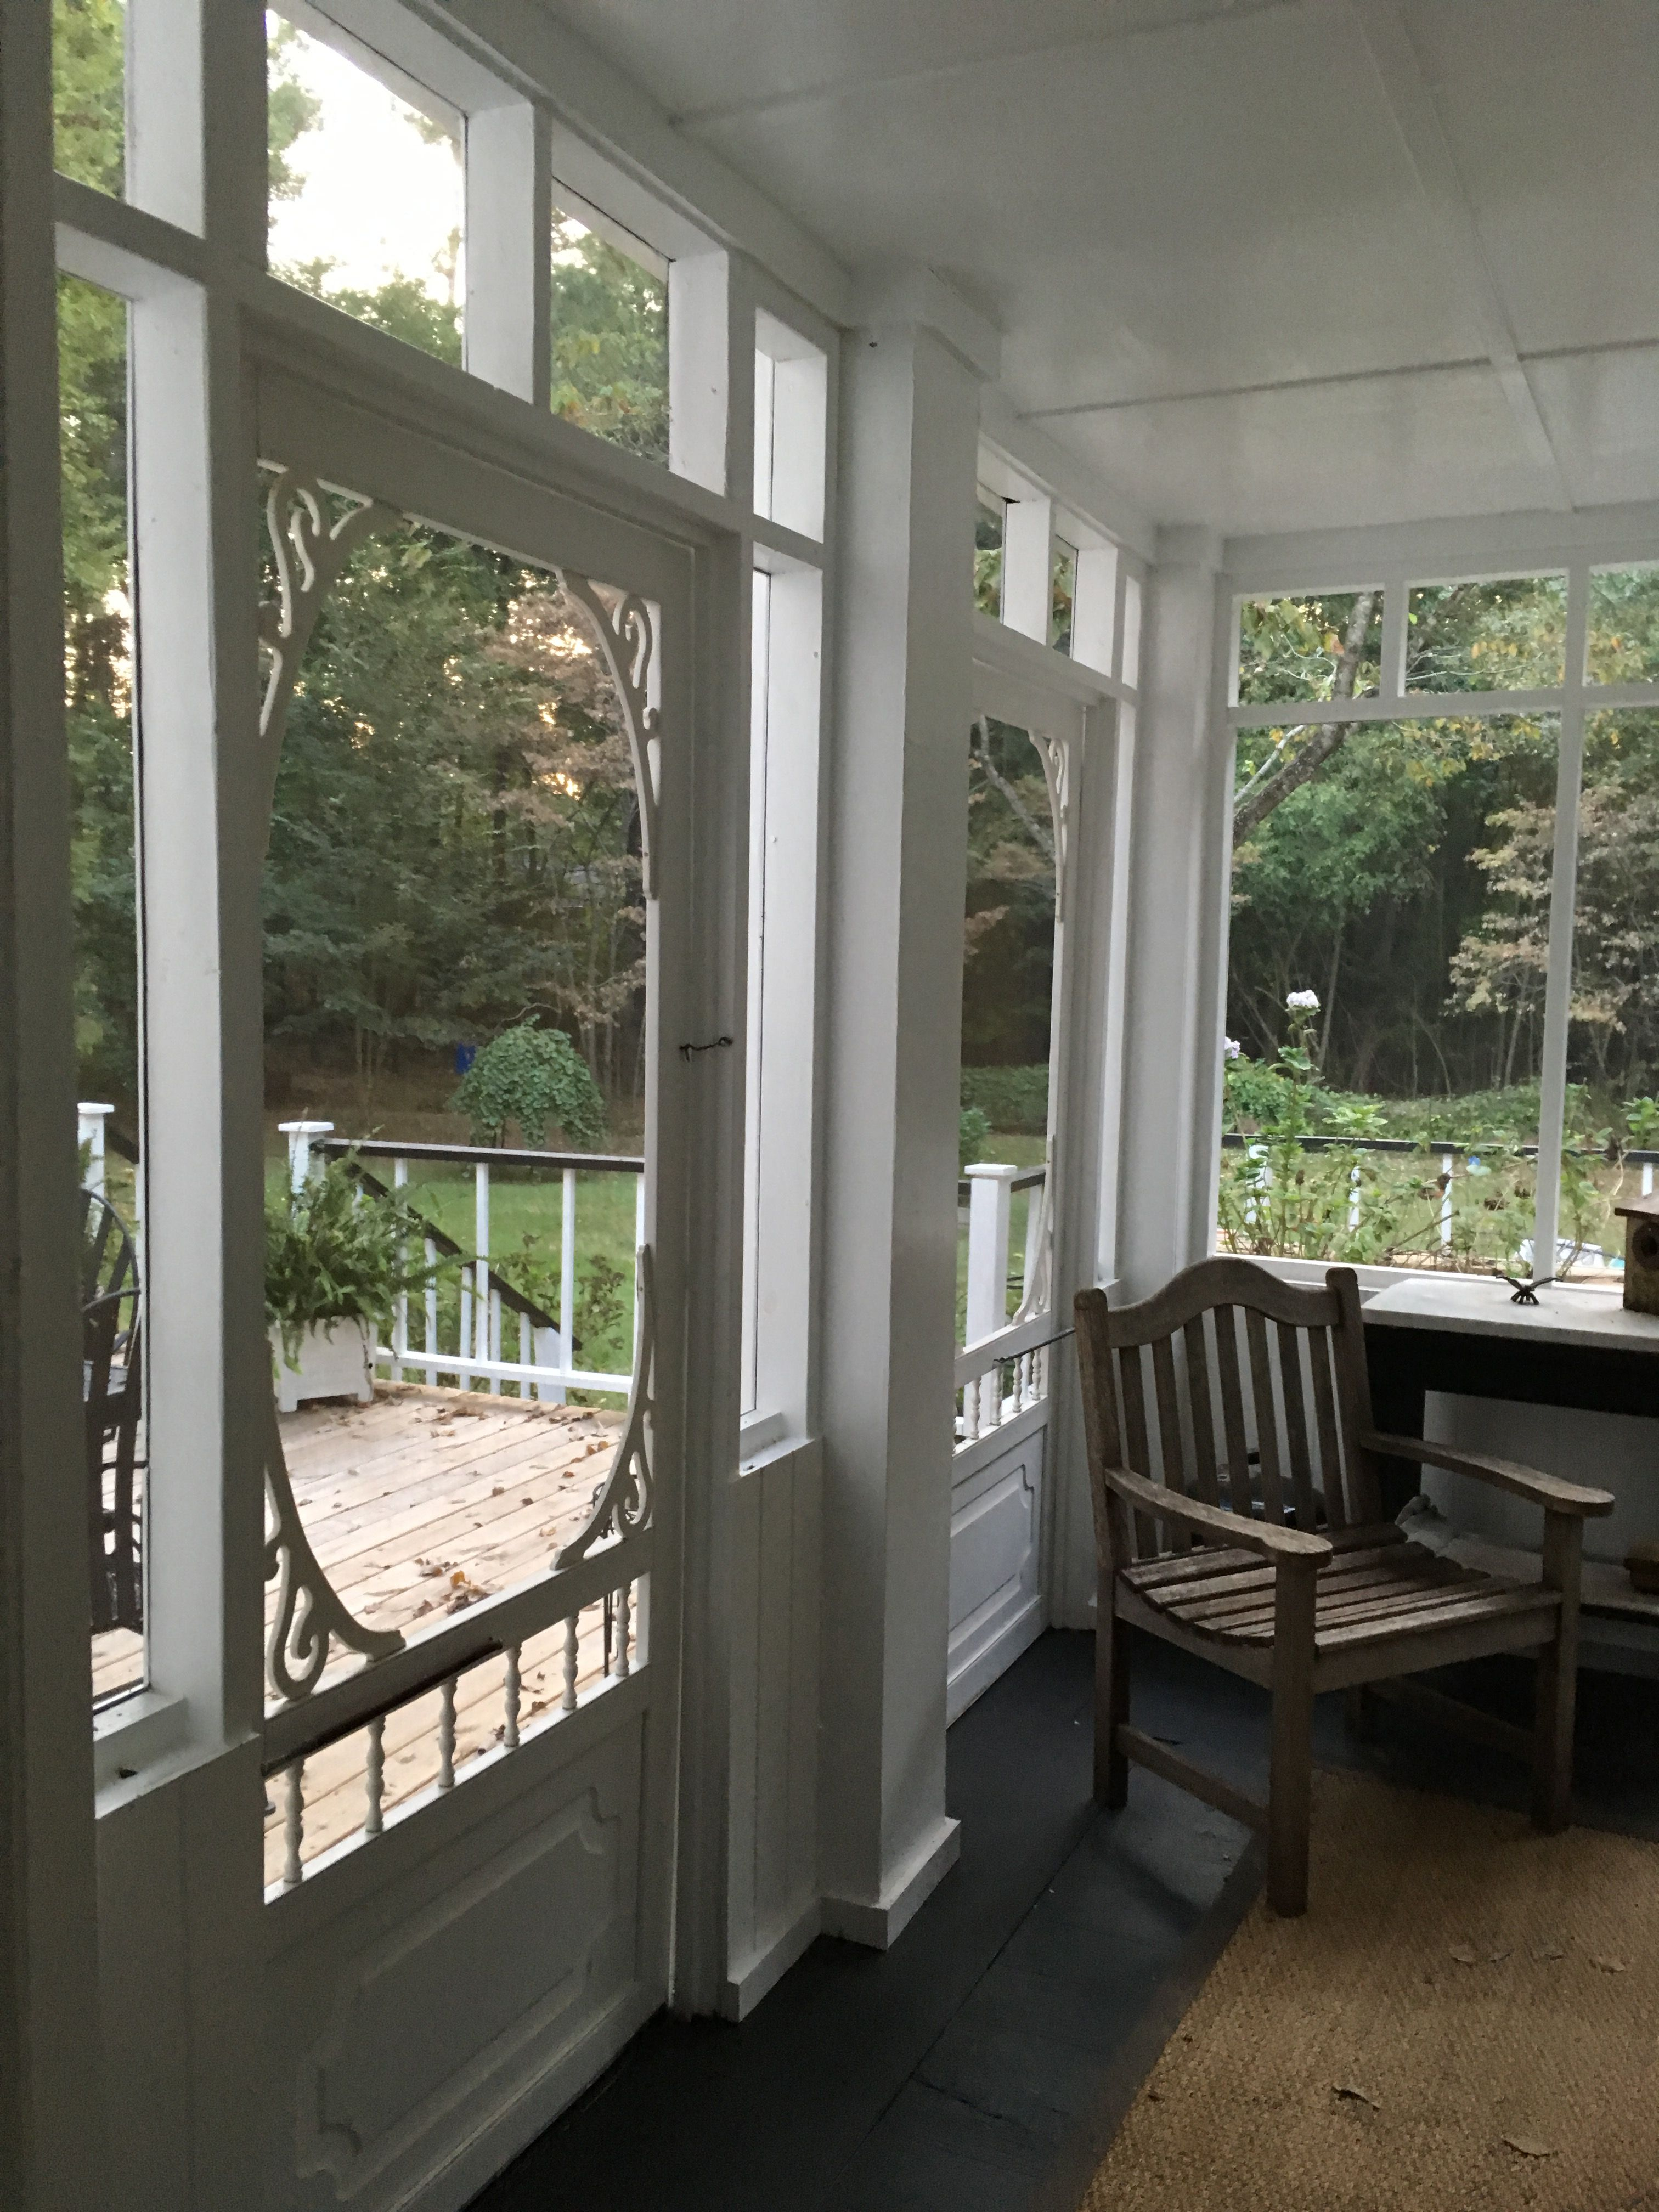 There's nothing like dreamin' and armchair travel. It was cool this morning, the screen porch beckoned-coffee in hand, I was pondering where to go on our winter family vacation. October…